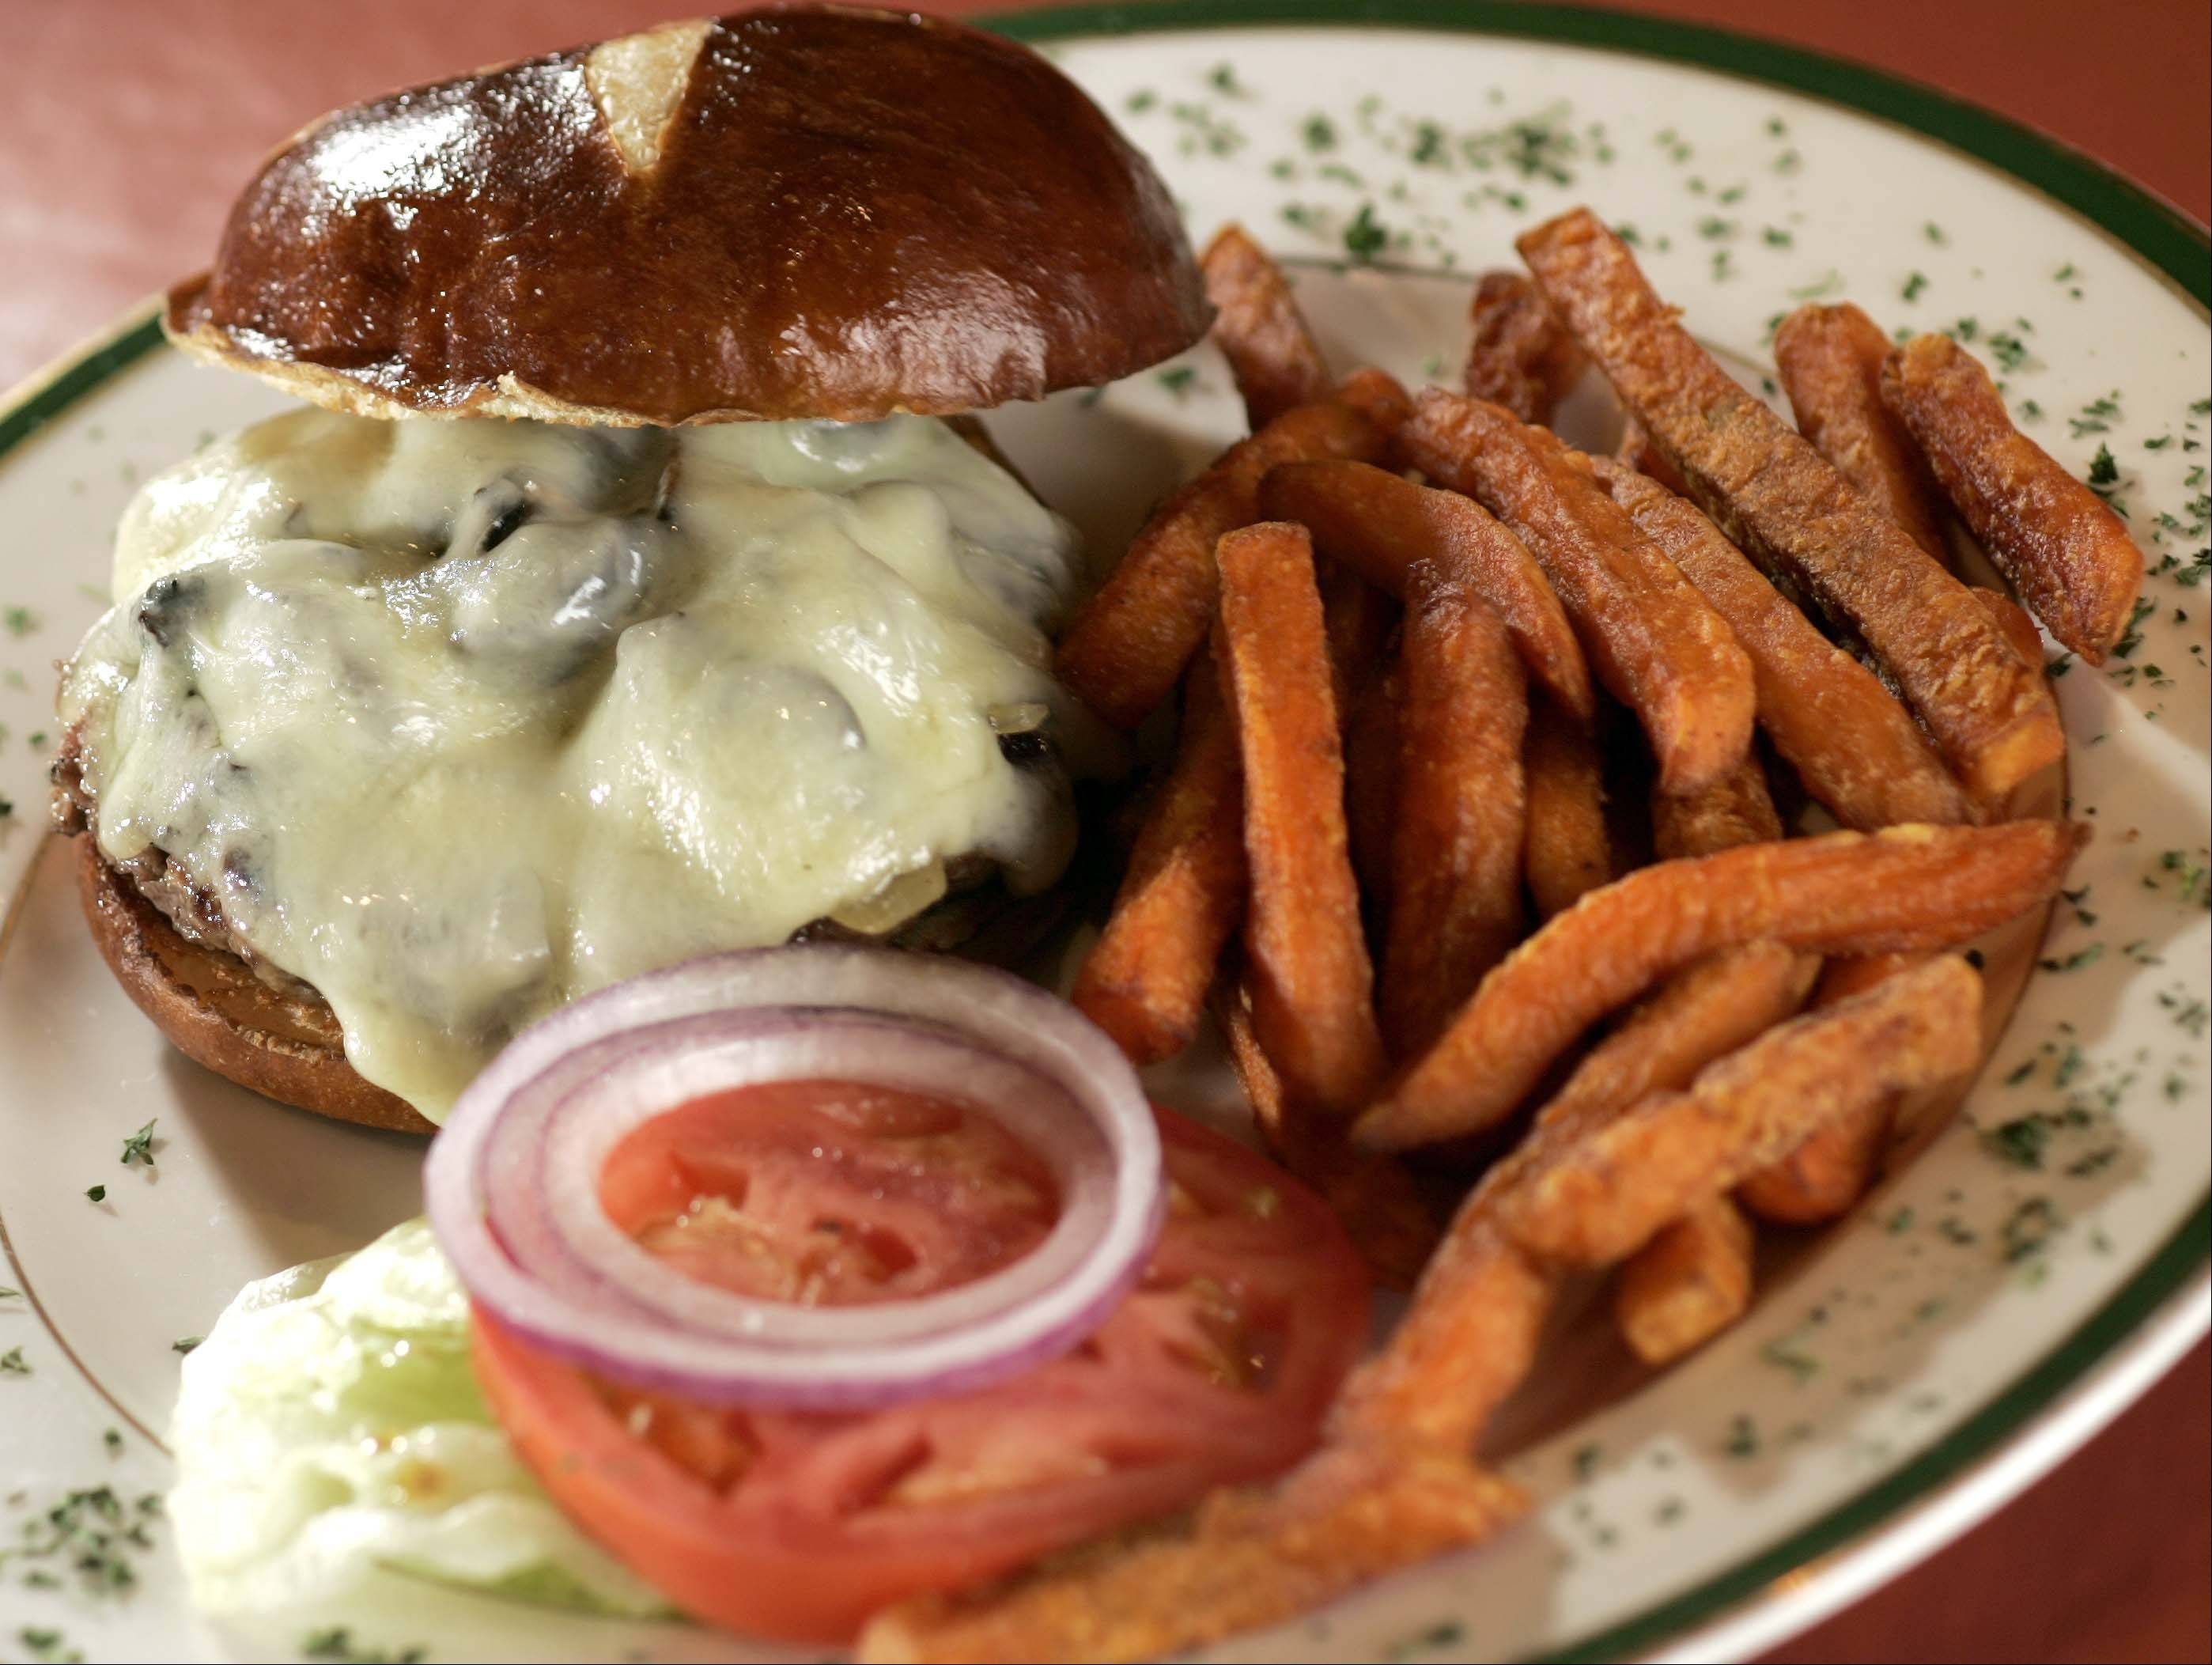 A mushroom and swiss burger is one of West End's sandwich options.